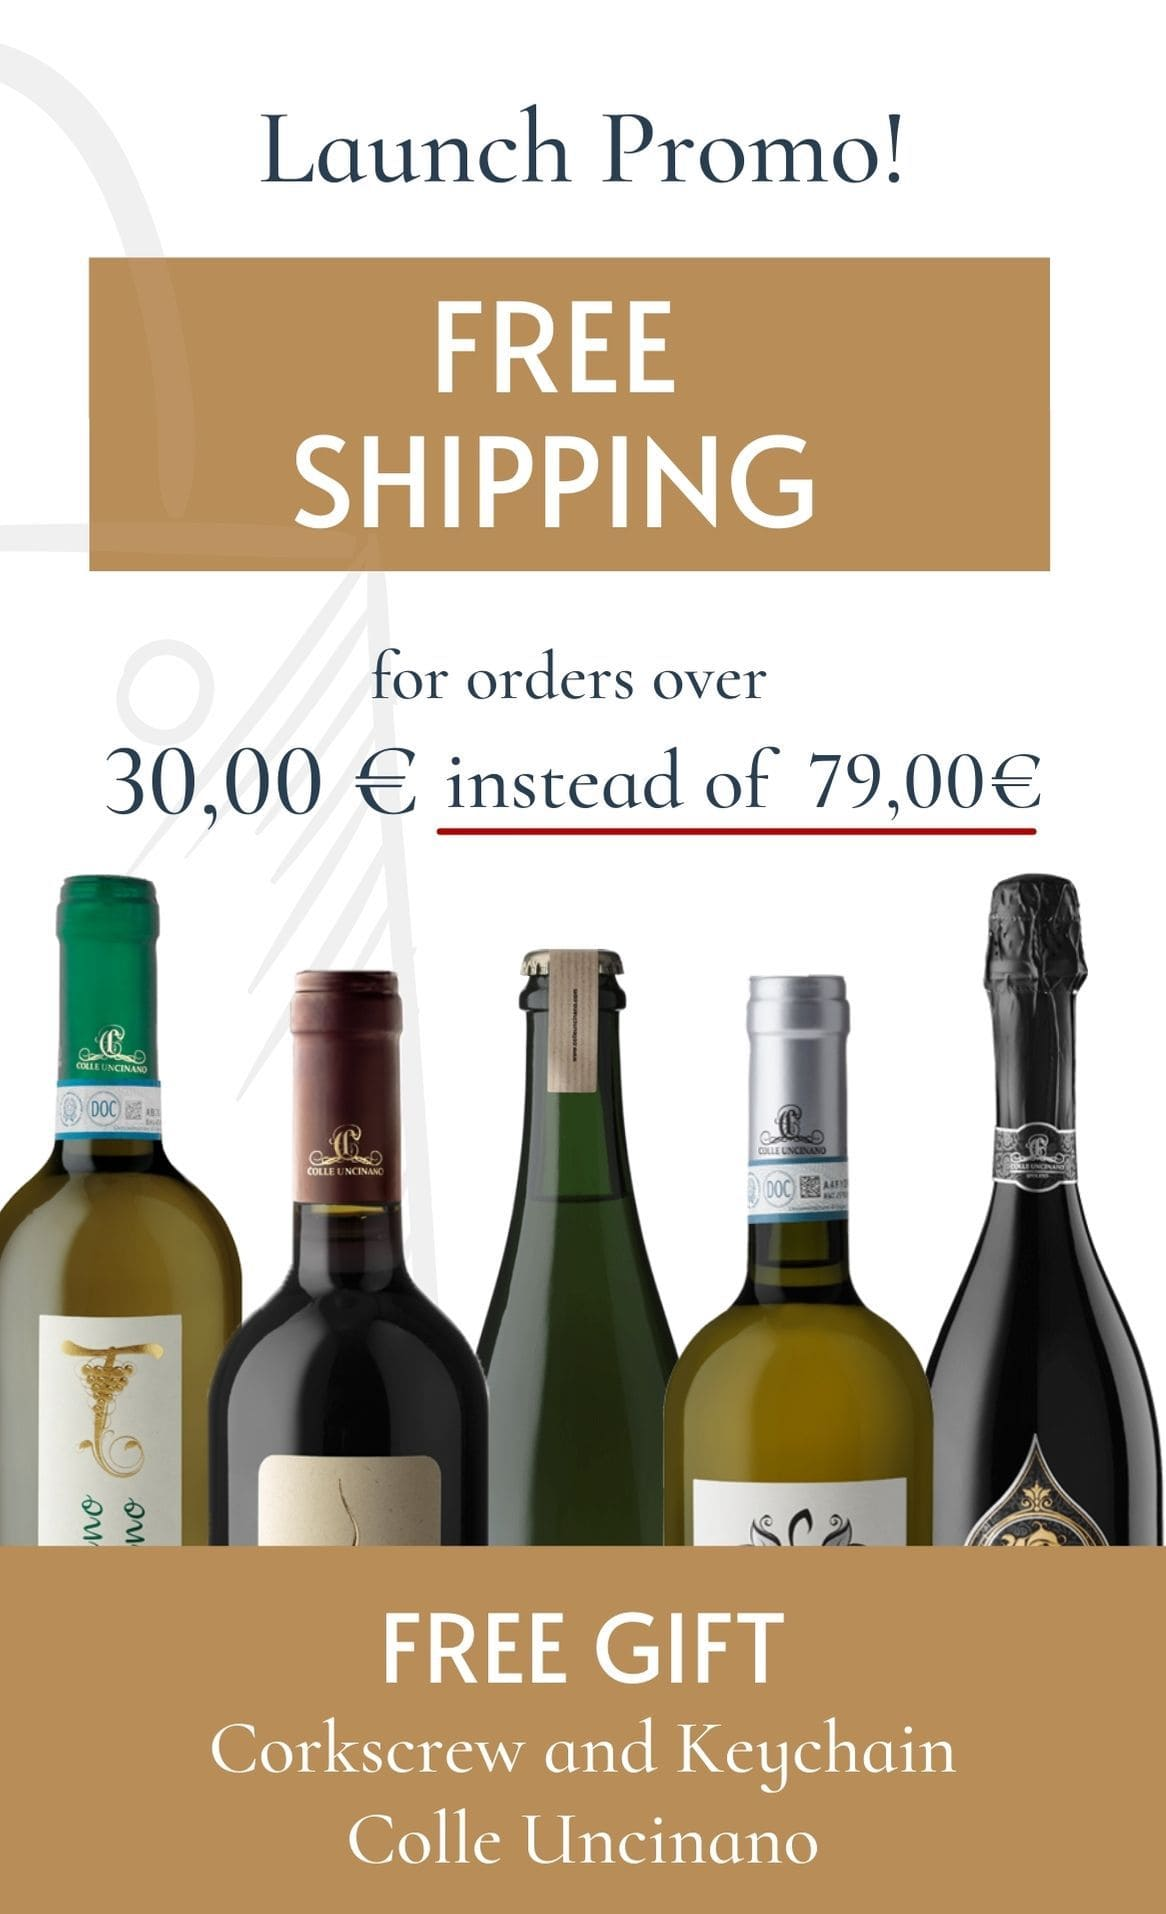 On the occasion of the launch of our website, free delivery for orders over € 30 instead of € 79 and as a gift for you a corkscrew and the key ring from colle uncinano